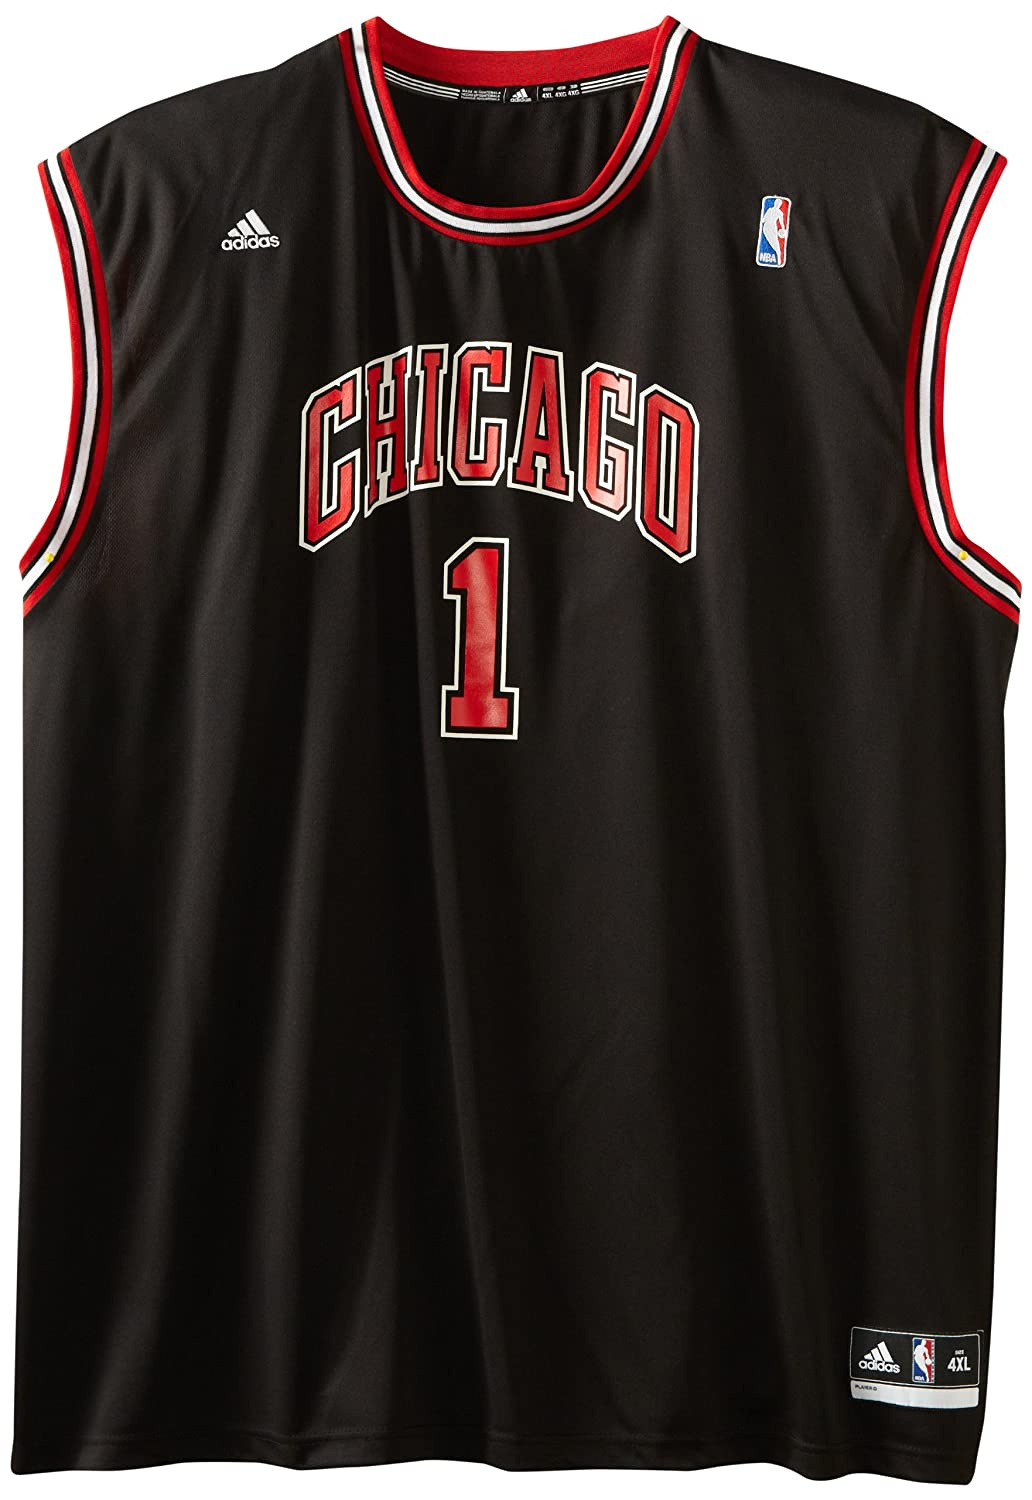 Adidas NBA Chicago Bulls Derrick Rose Revolución 30 Alternativo Road réplica de la Camiseta, Hombre, Chicago Bulls: Amazon.es: Deportes y aire libre